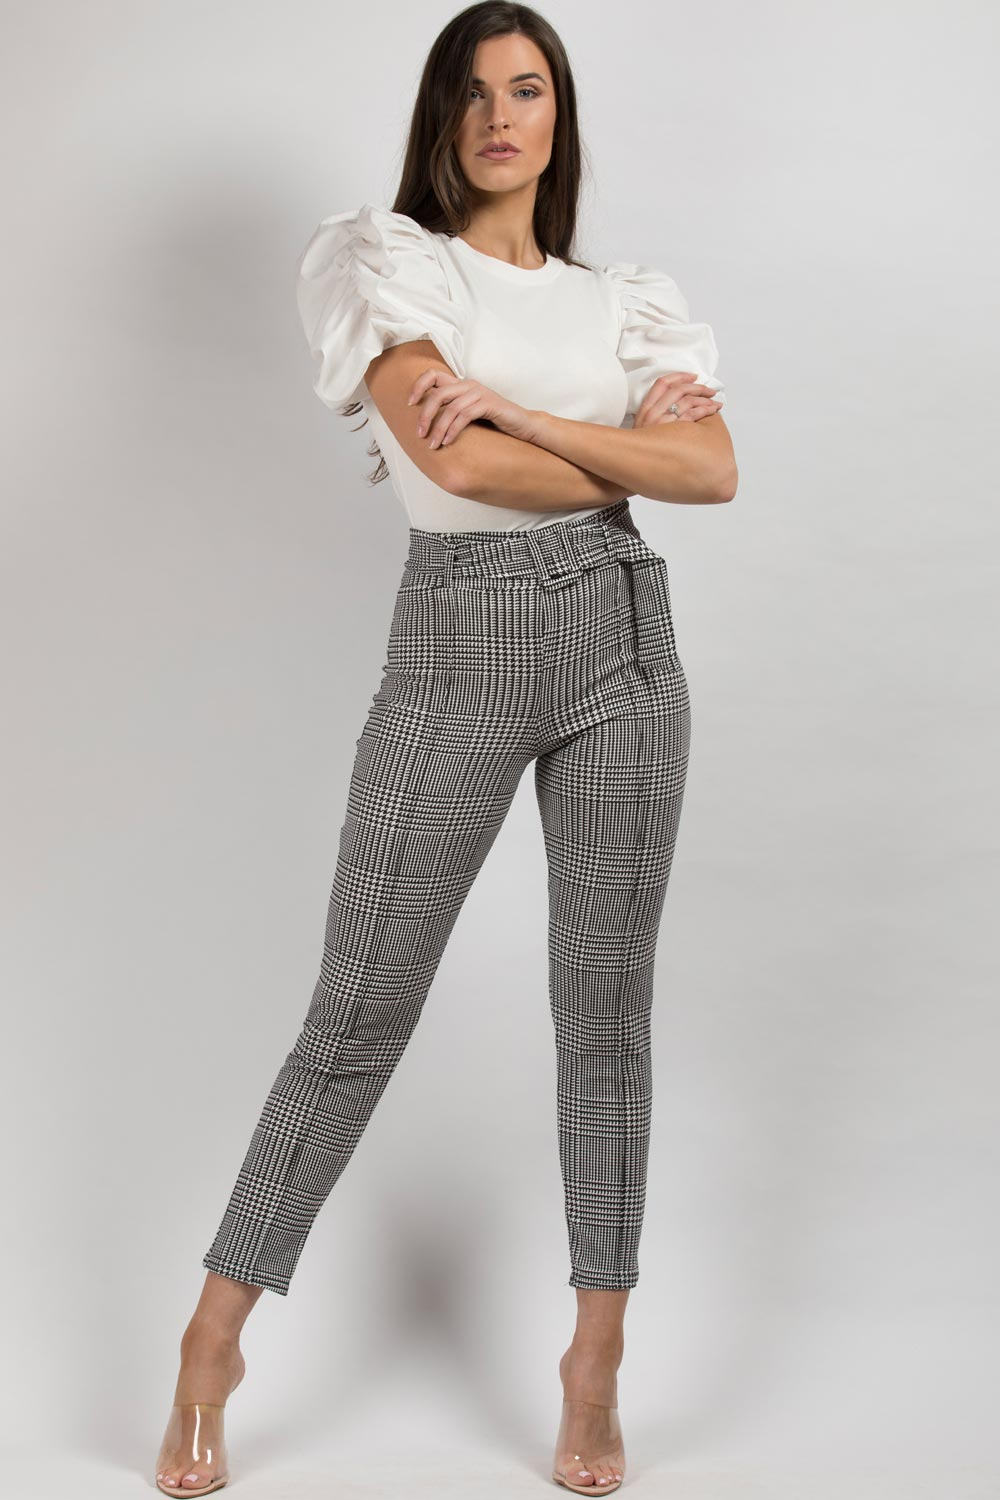 black white houndstooth trousers belted